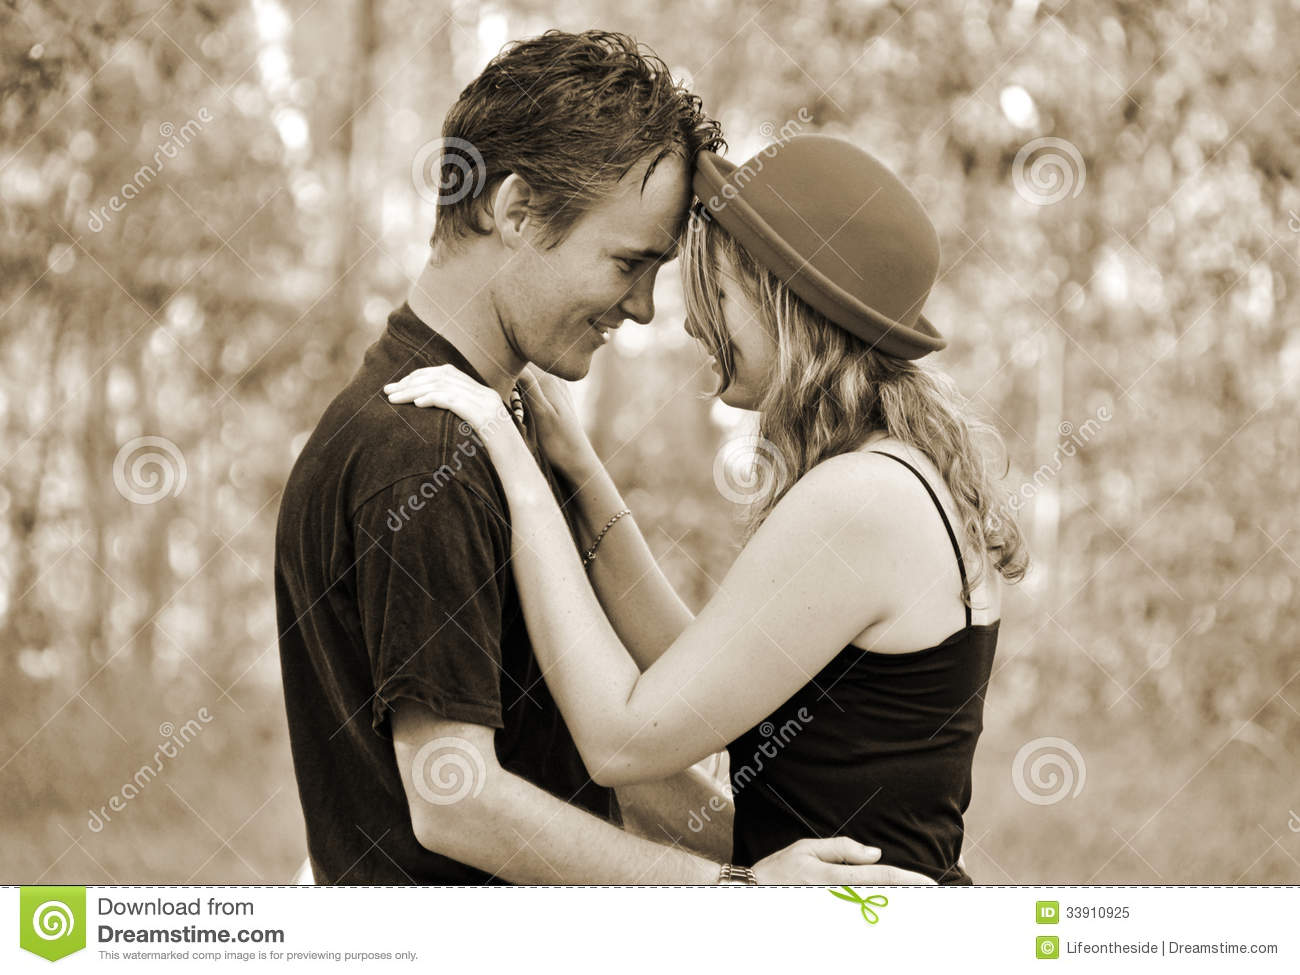 romantic portrait of young woman amp man in love royalty free stock photo   image 33910925